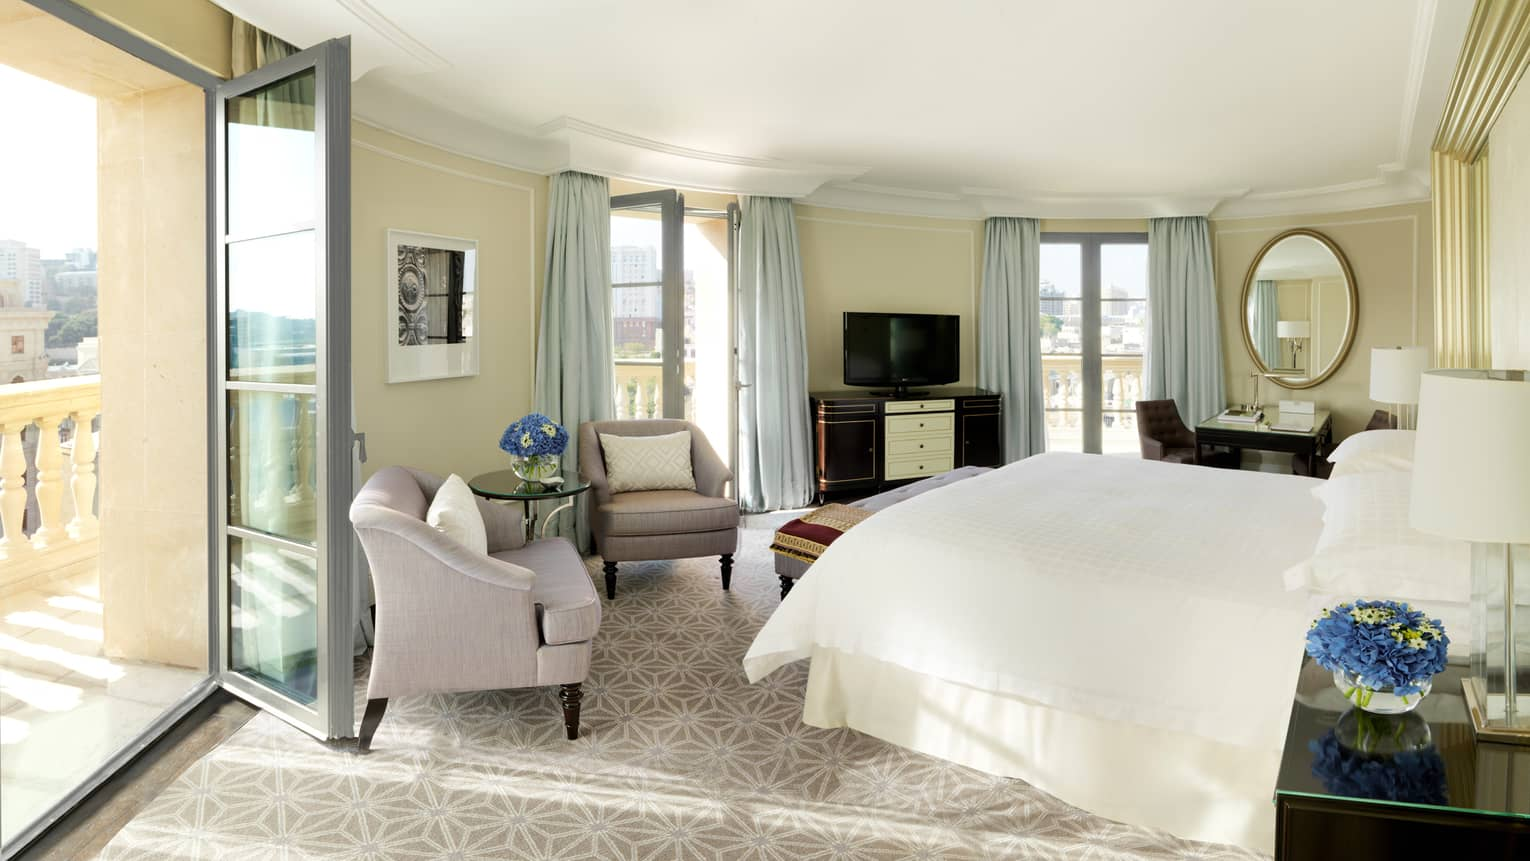 Hotel bedroom with a white king bed, two light purple arm chairs, and three glass doors opening to balcony